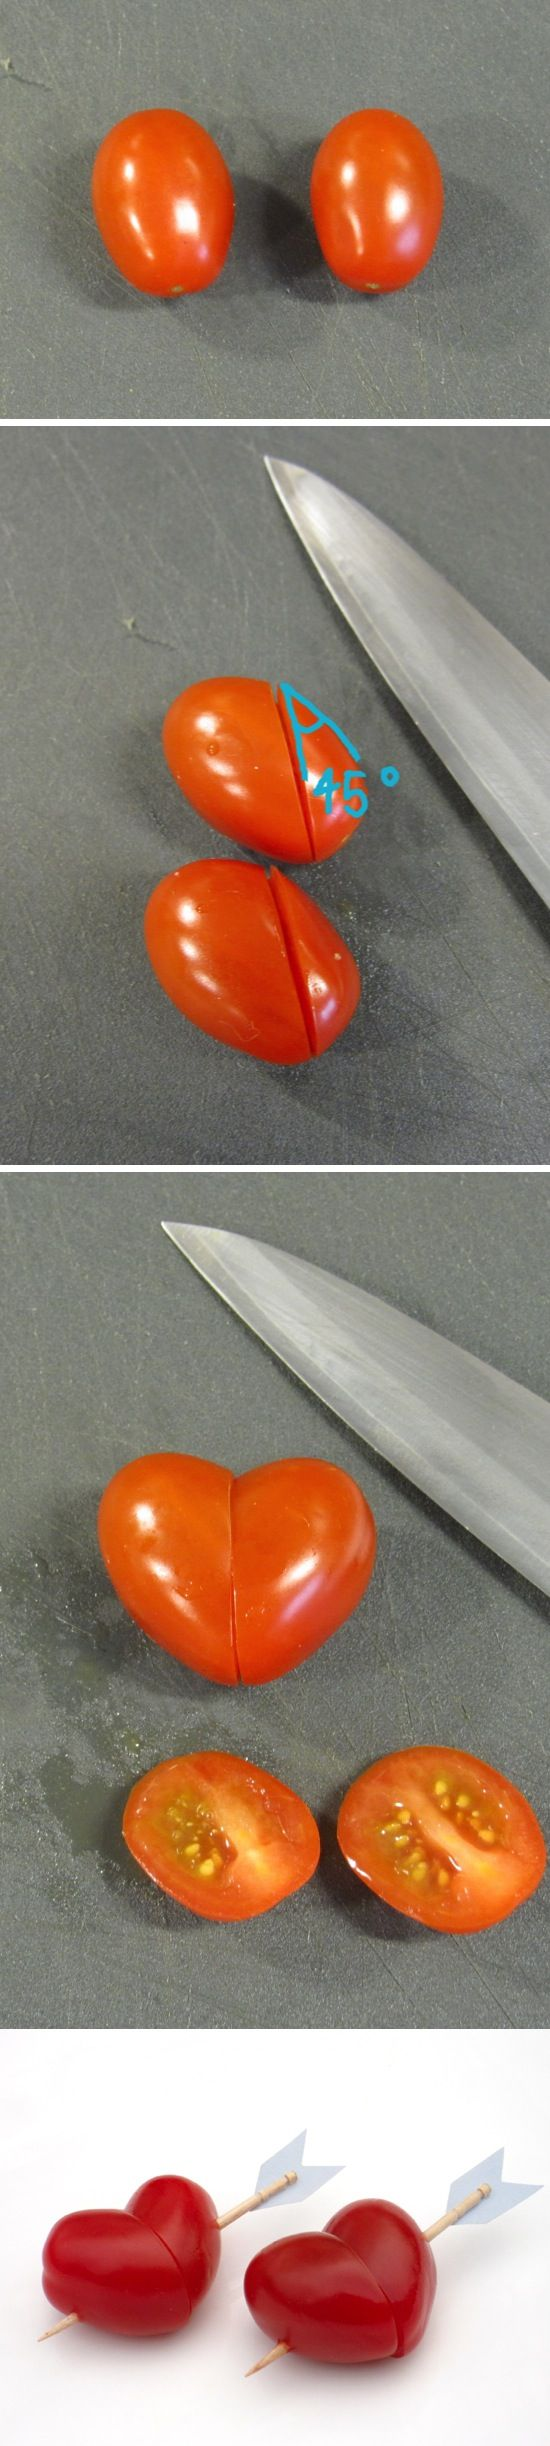 cherry tomato hearts. So cute!